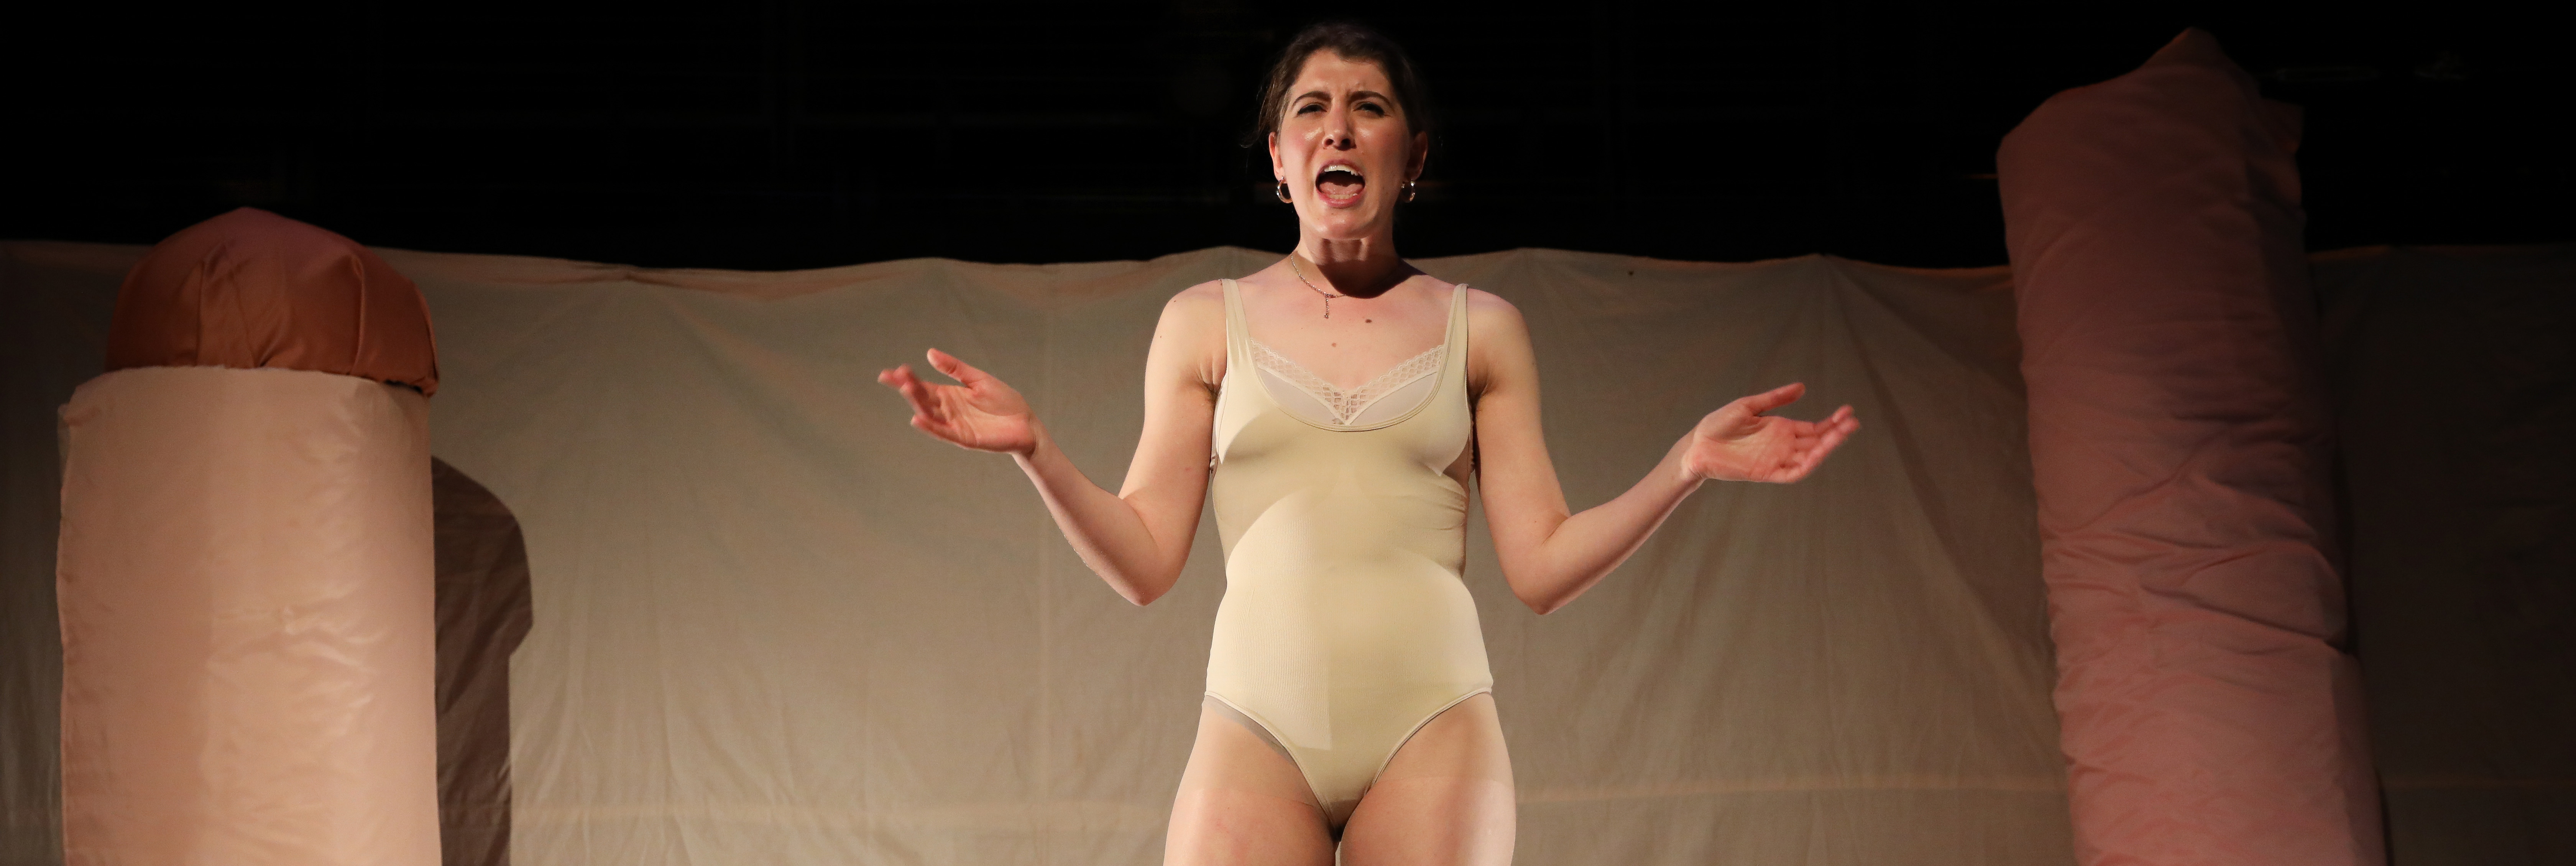 Image from theatre performance of 'Reach Out and Touch Me'